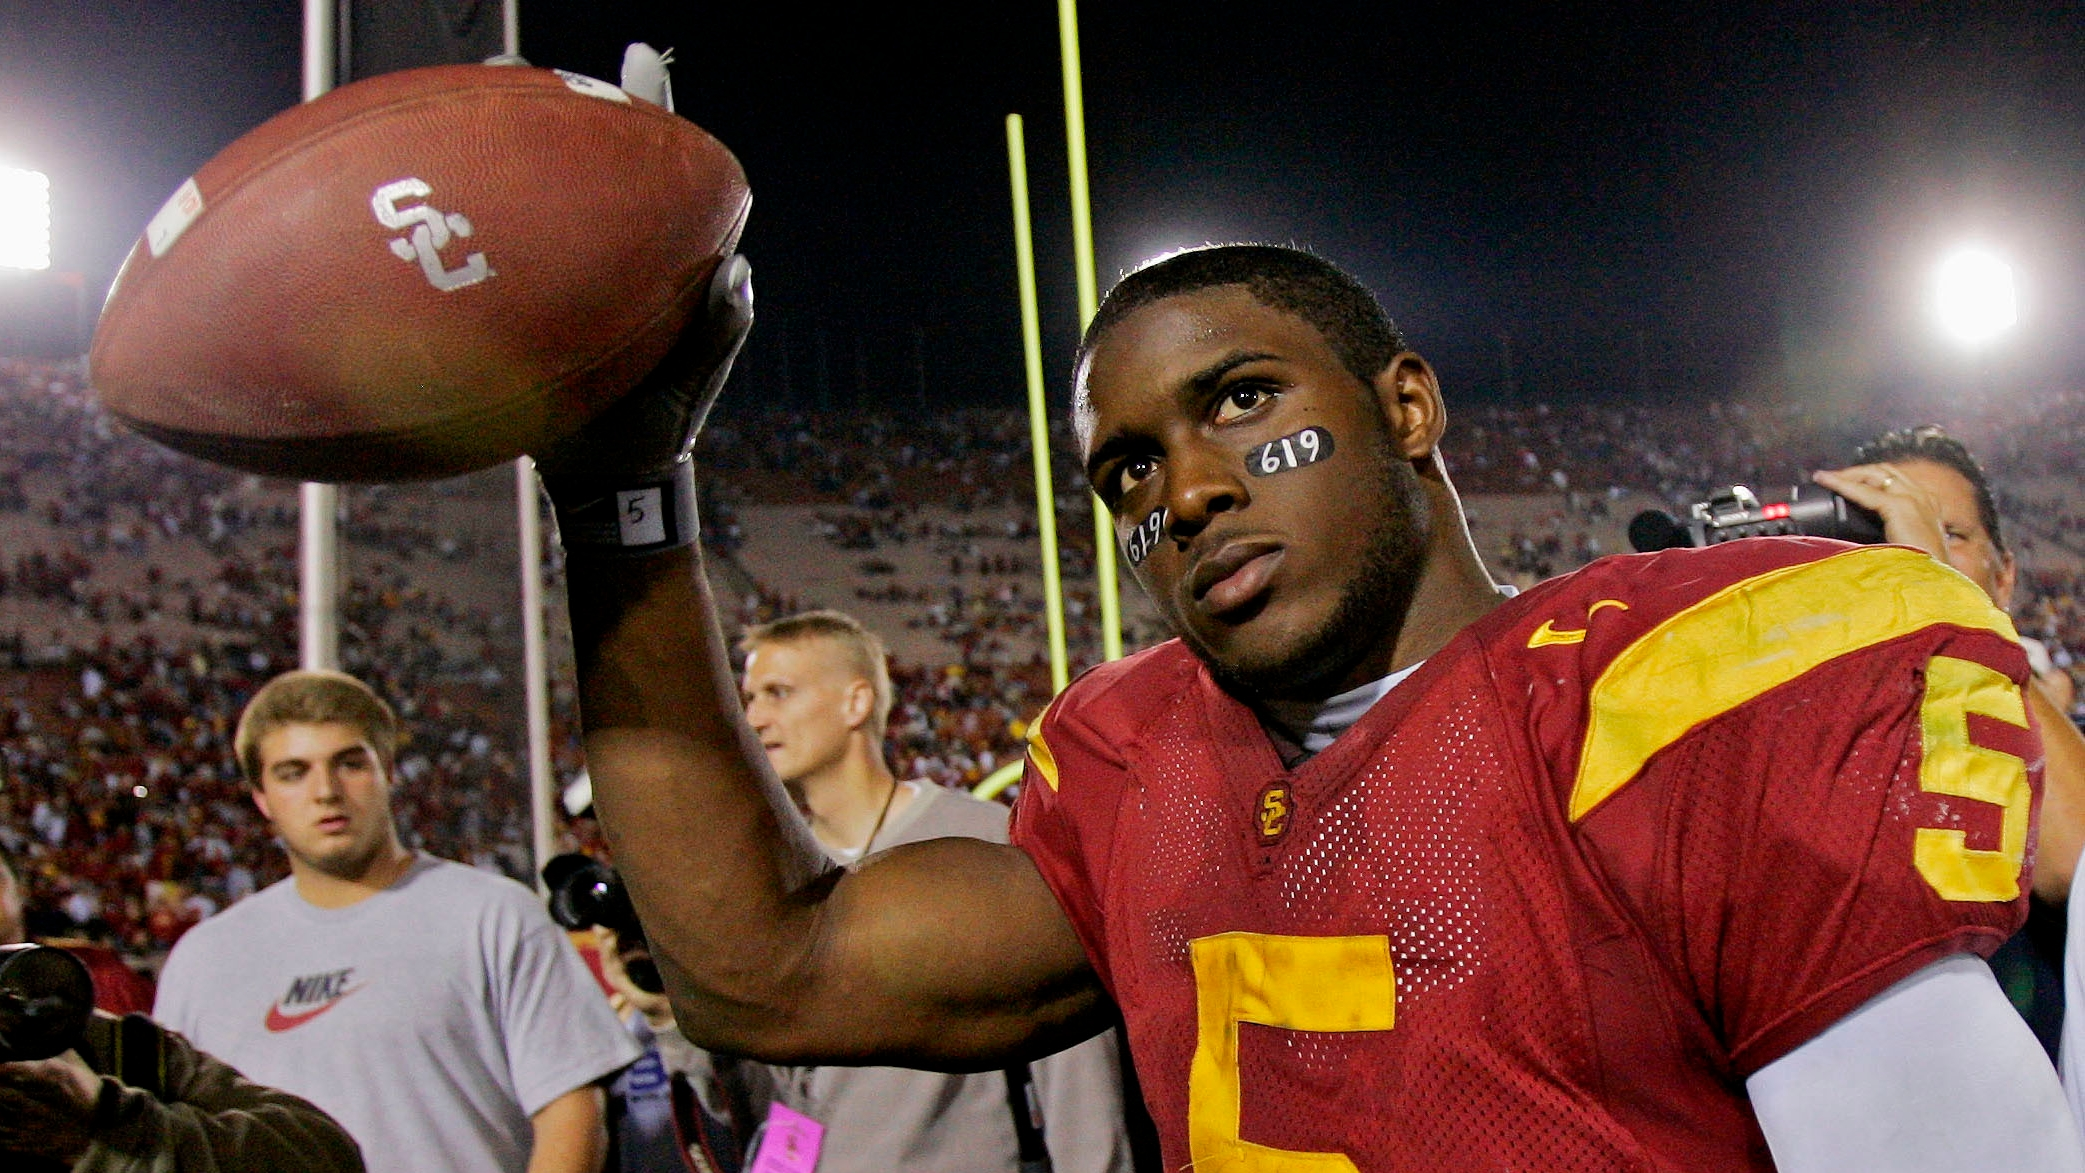 USC and Reggie Bush together again as his 10-year NCAA ban is lifted